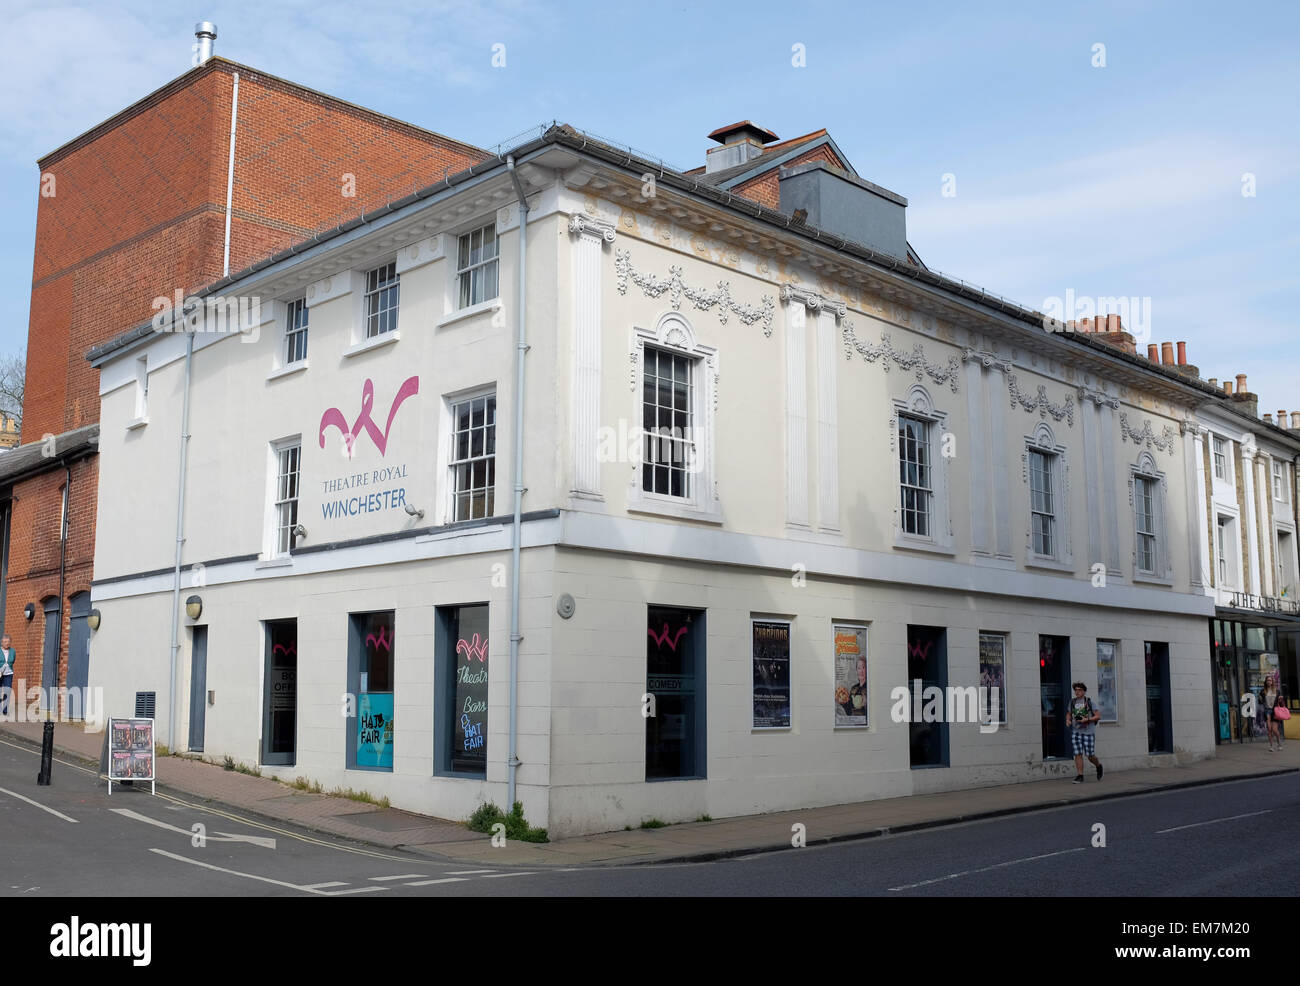 Theatre Royal Jewry Street Winchester - Stock Image